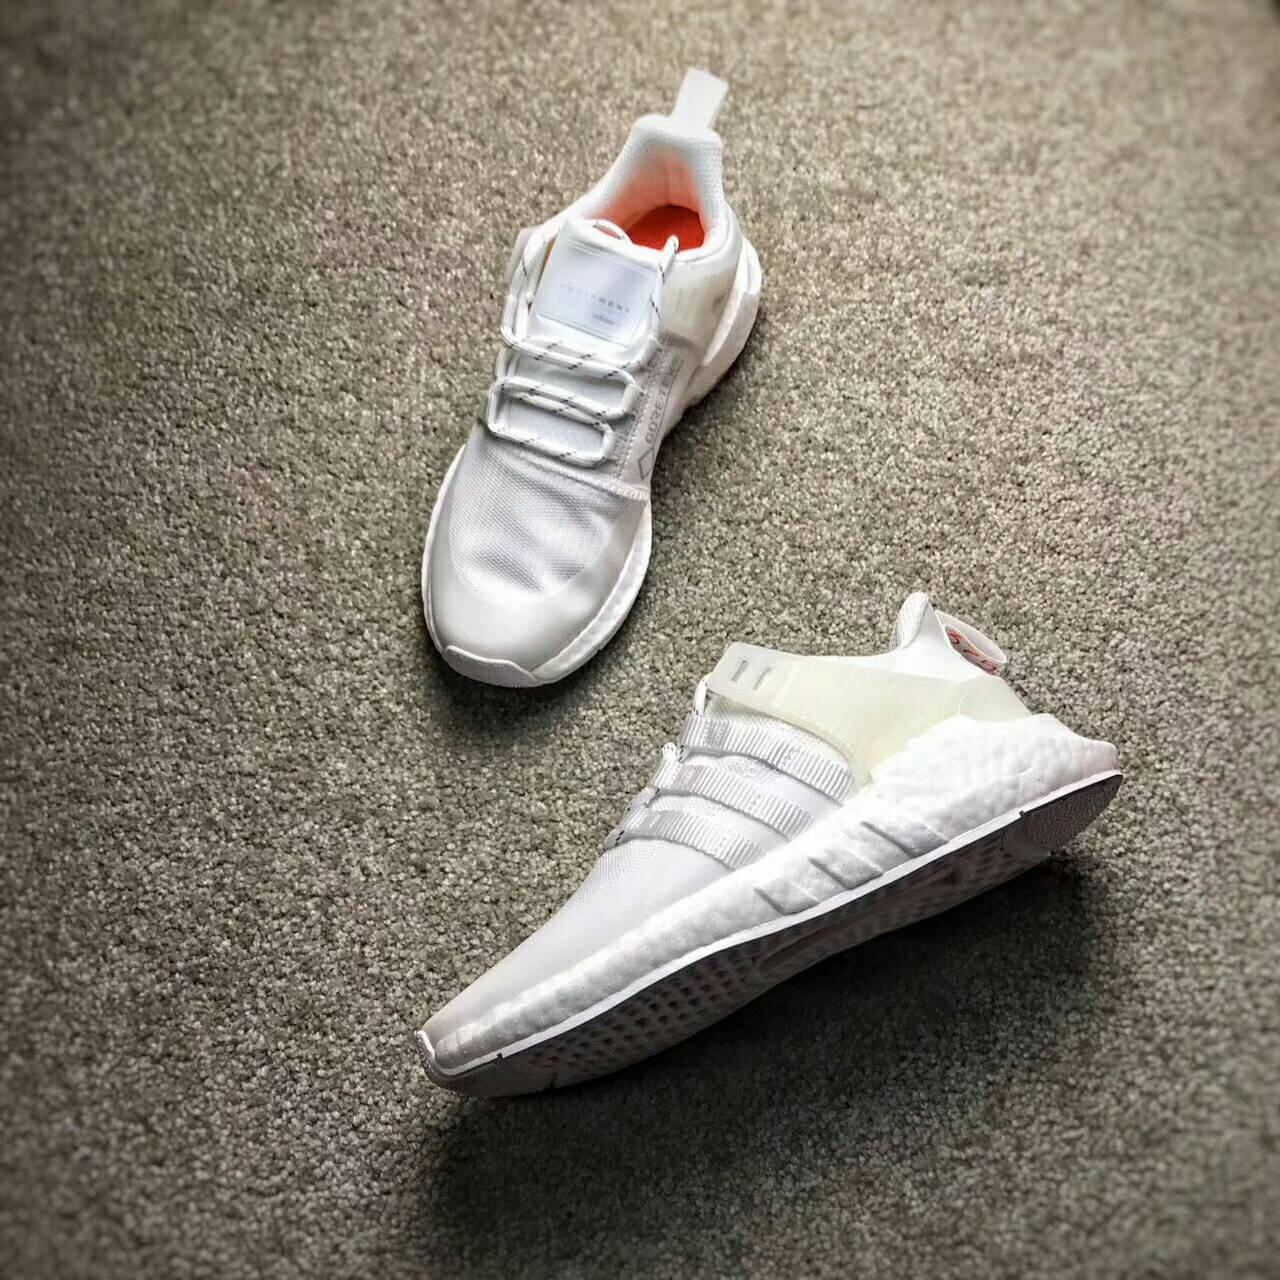 Adidas EQT Support Future Gore-tex 93/17 白色 情侶款